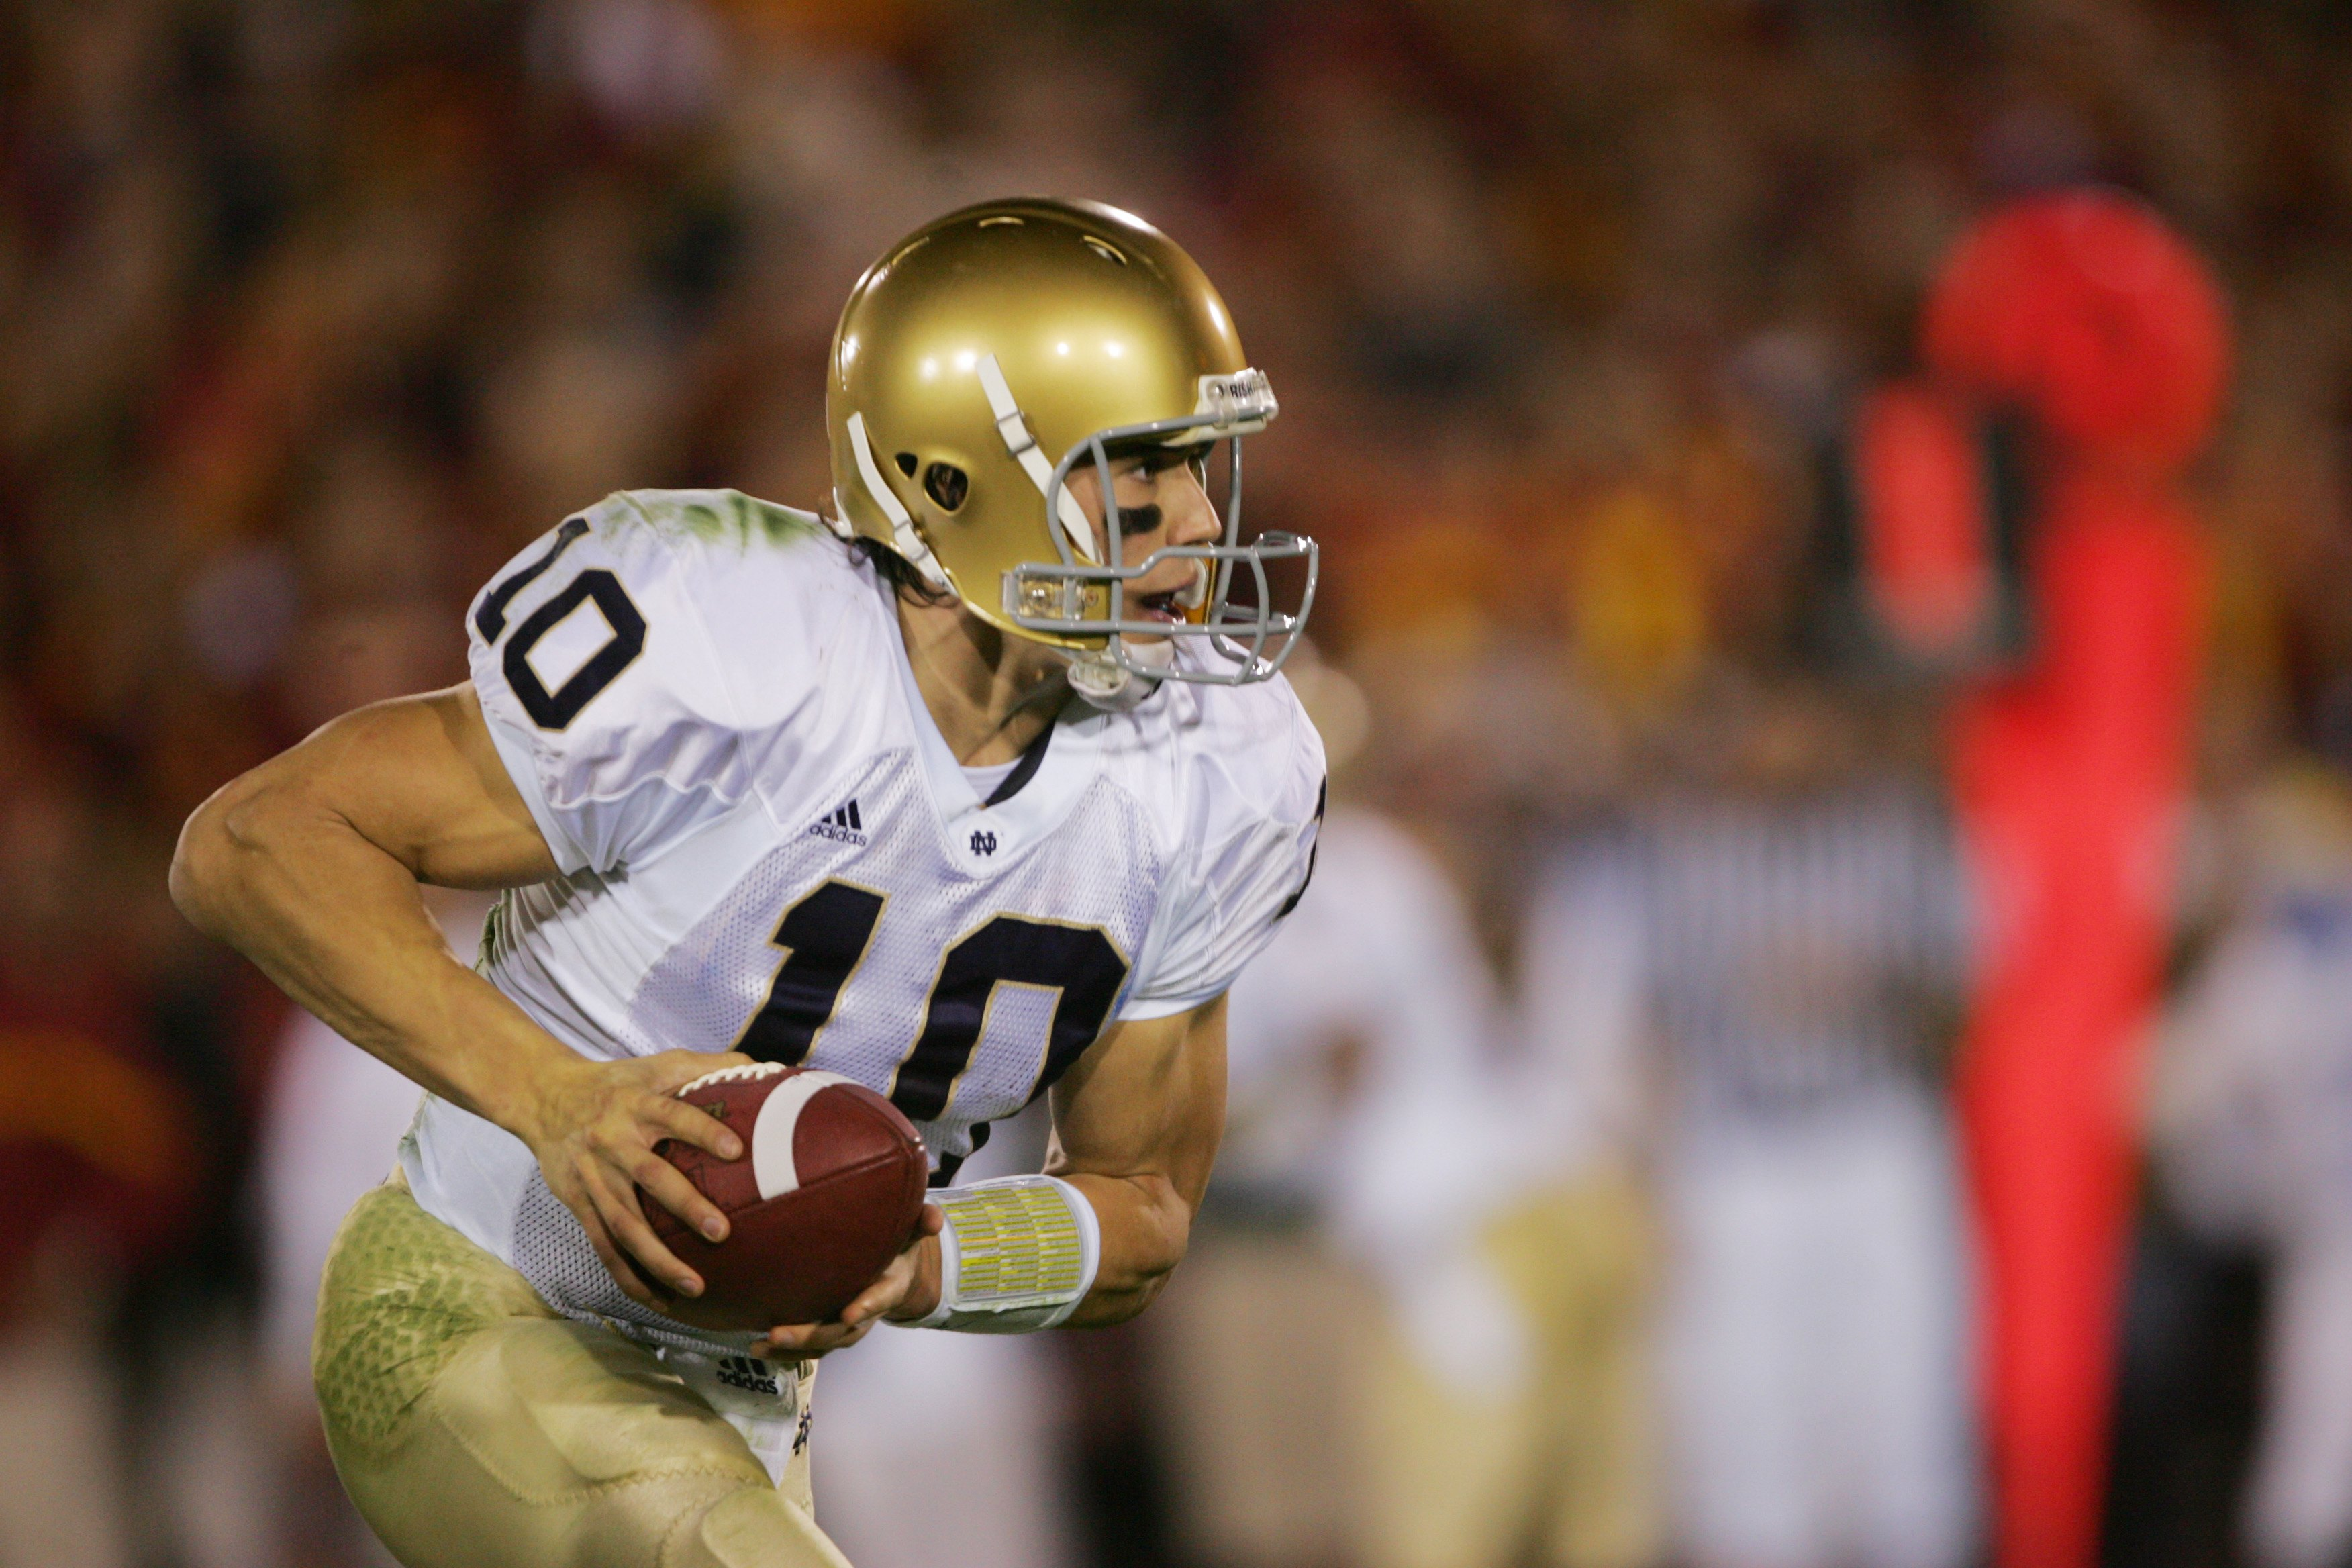 LOS ANGELES - NOVEMBER 25:  Quarterback Brady Quinn #10 of the Notre Dame Fighting Irish drops back against the USC Trojans at the Los Angeles Memorial Coliseum on November 25, 2006 in Los Angeles, California. USC won 44-24. (Photo by Stephen Dunn/Getty I